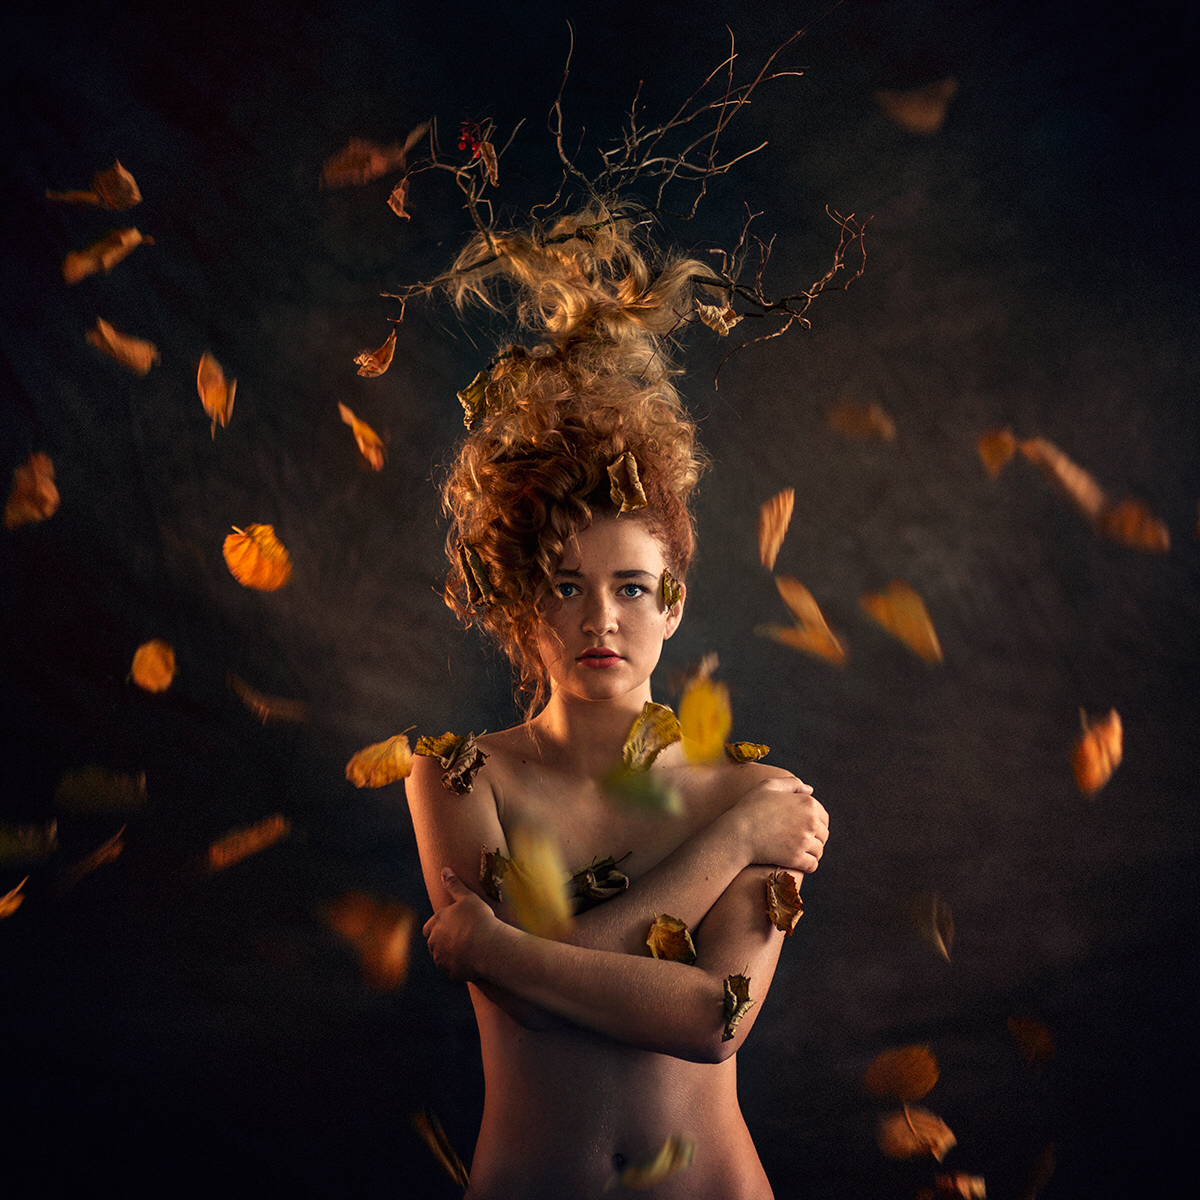 This Remarkable, Creative Photography Will Be The Highlight of Your Day!